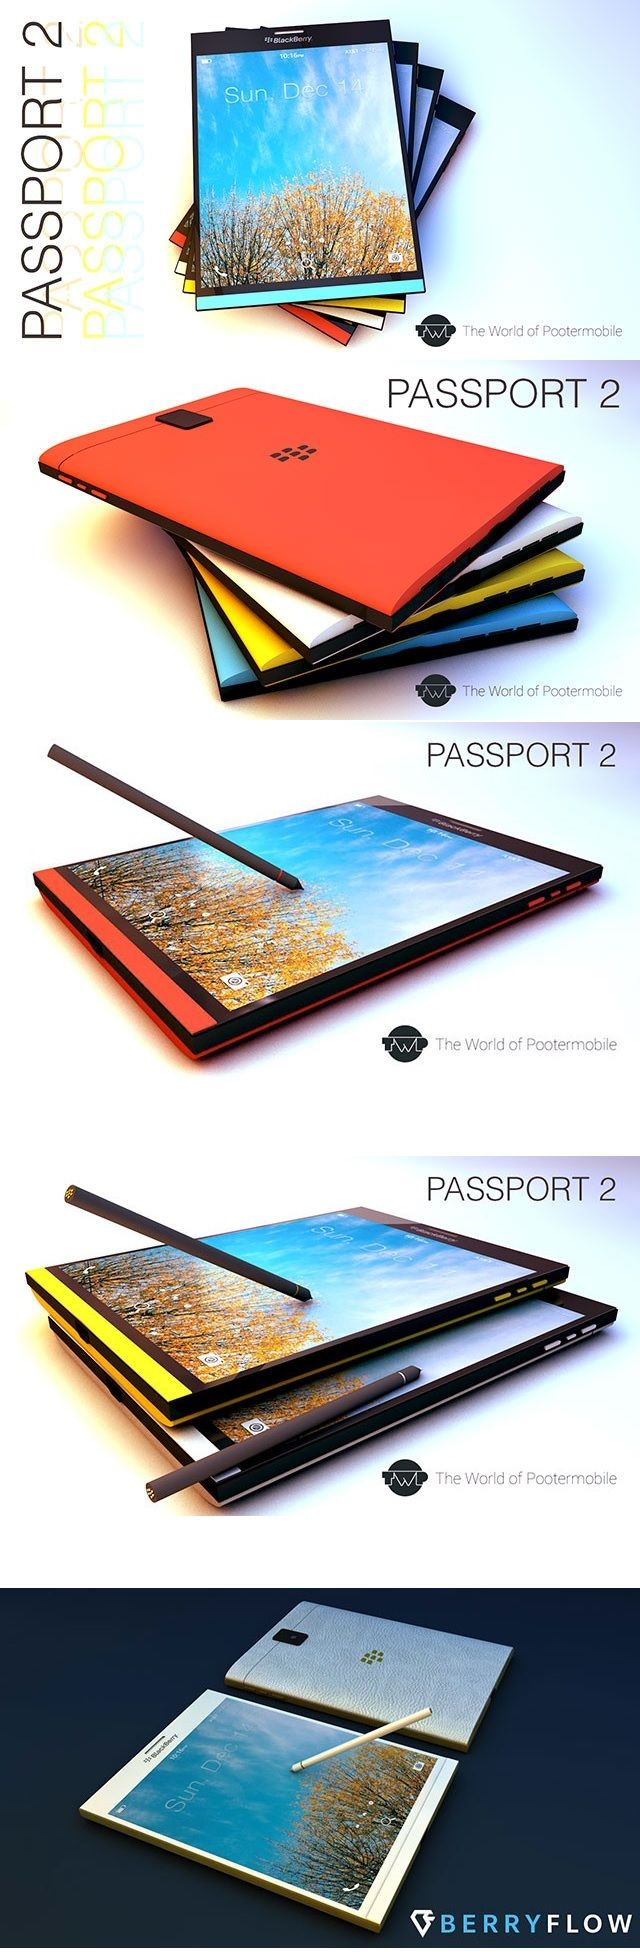 BlackBerry Passport 2 : a concept of any touch by Pootermobile